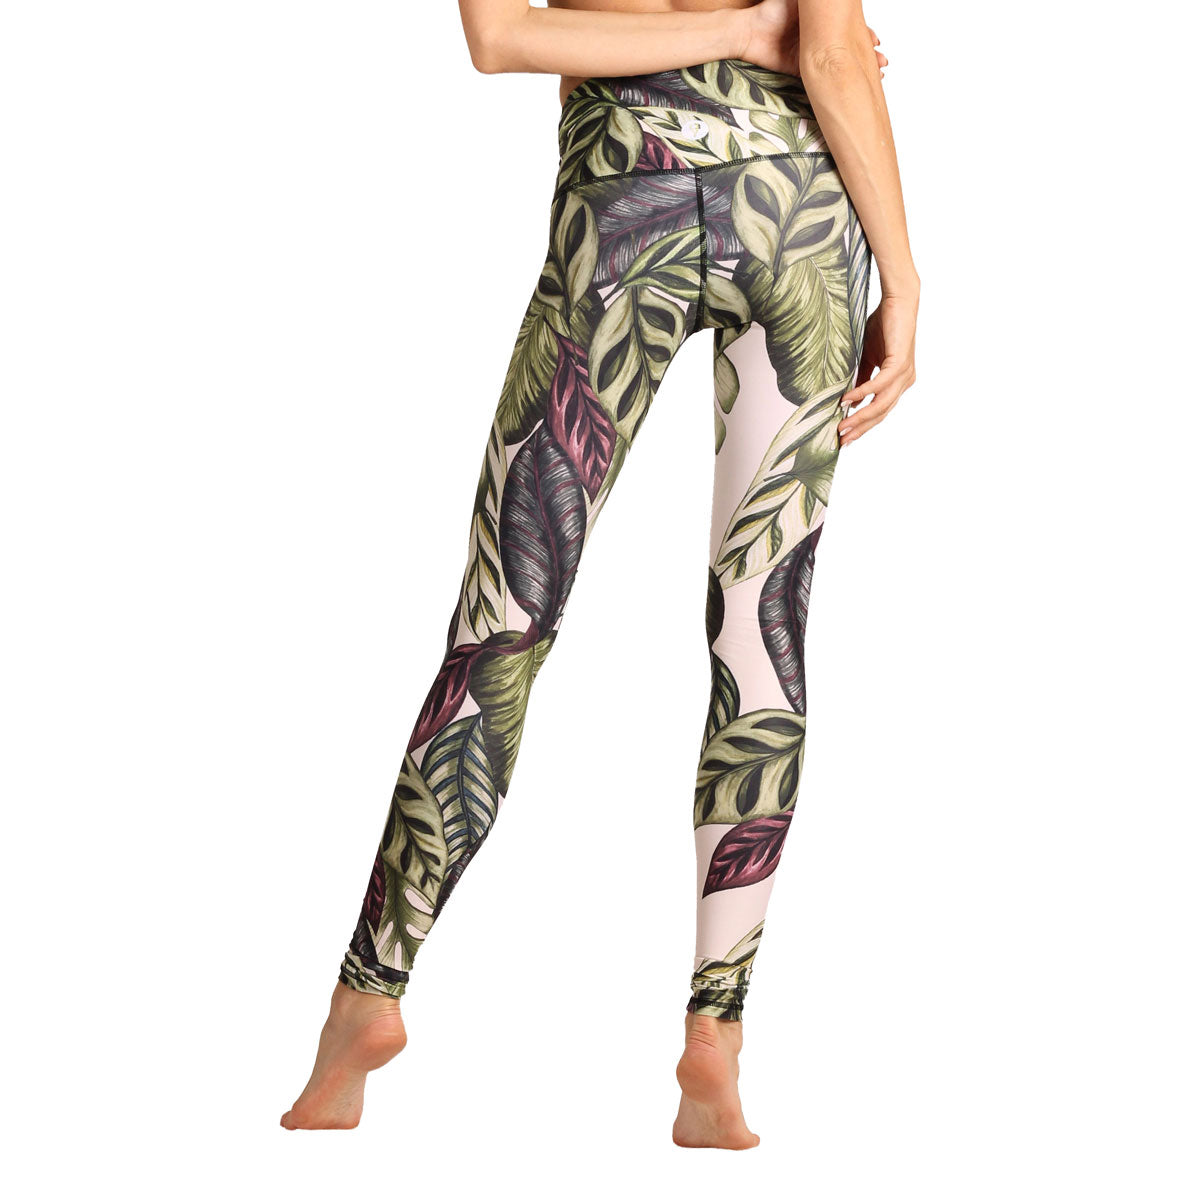 YOGA DEMOCRACY Leaf It To Me Eco Yoga Leggings